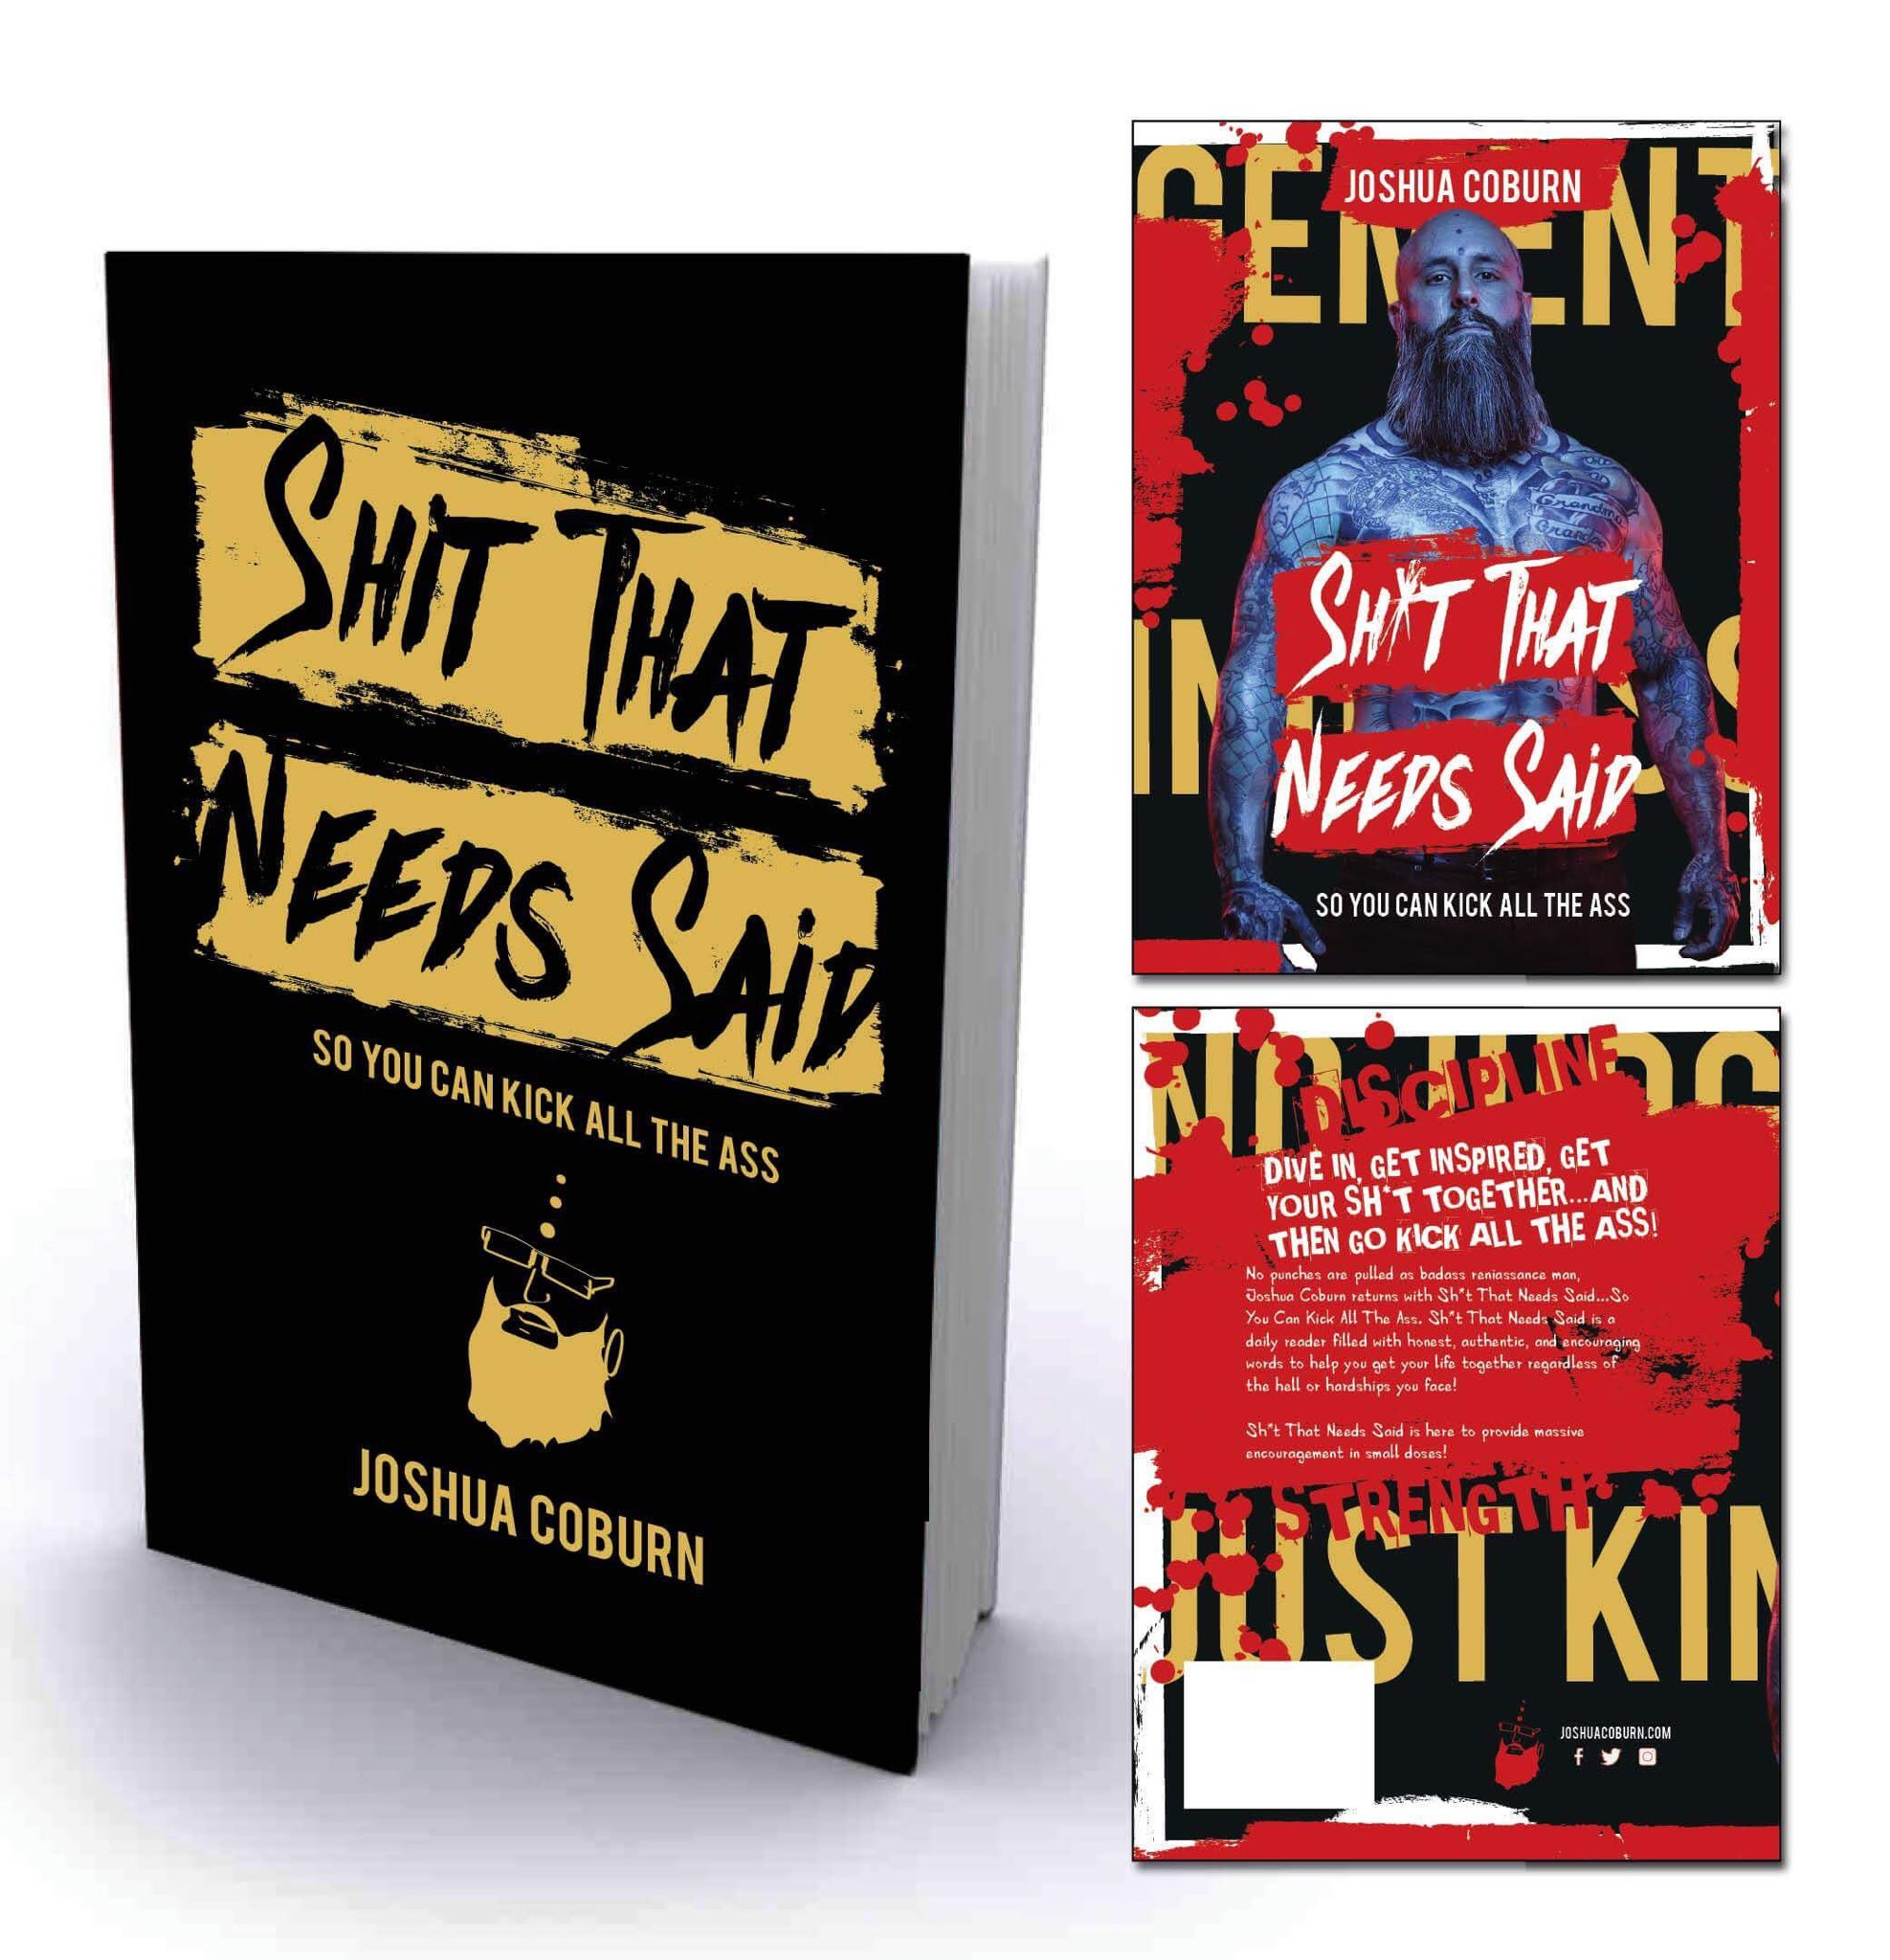 """Joshua Coburn's New Book, shown with slip cover, titled """"Shit That Needs Said...so you can kick all the ass"""""""